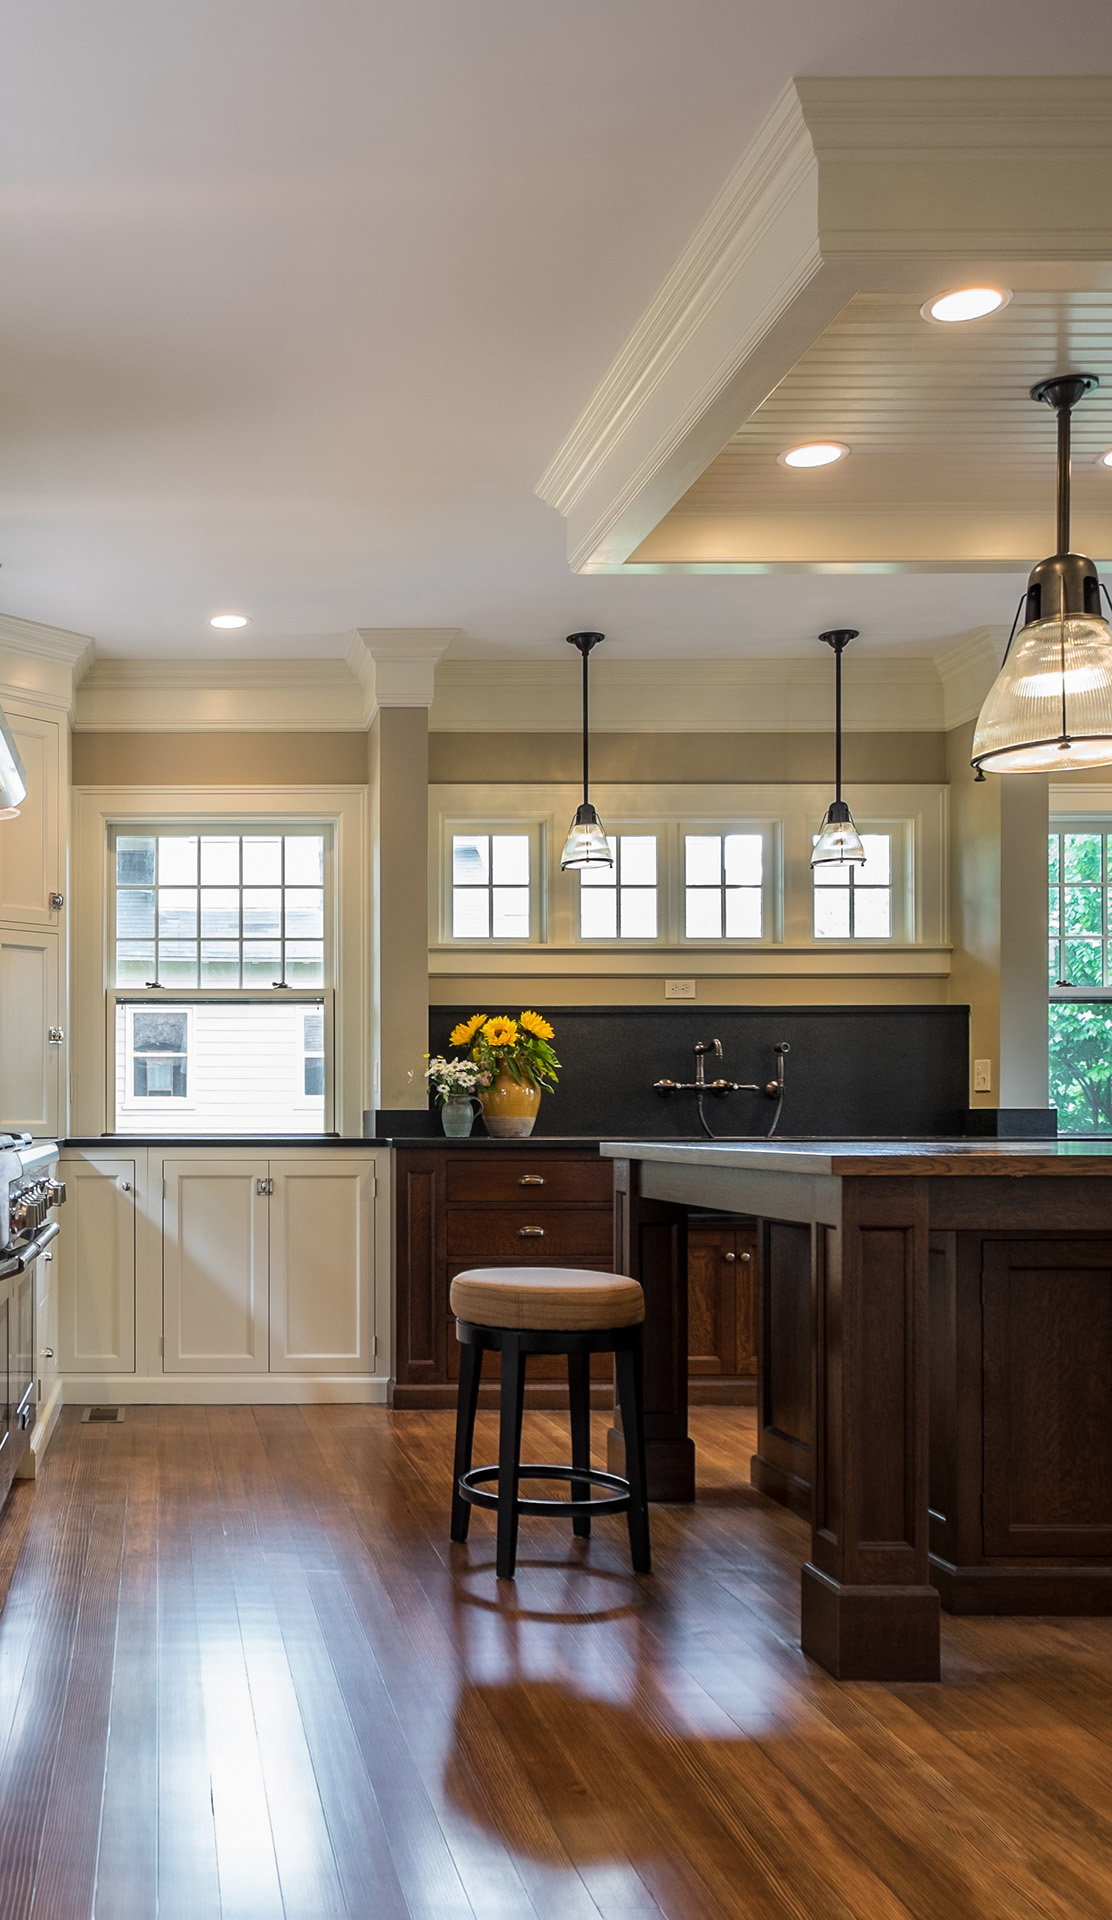 Transitional Kitchen featuring contrasting woods and white panel cabinets